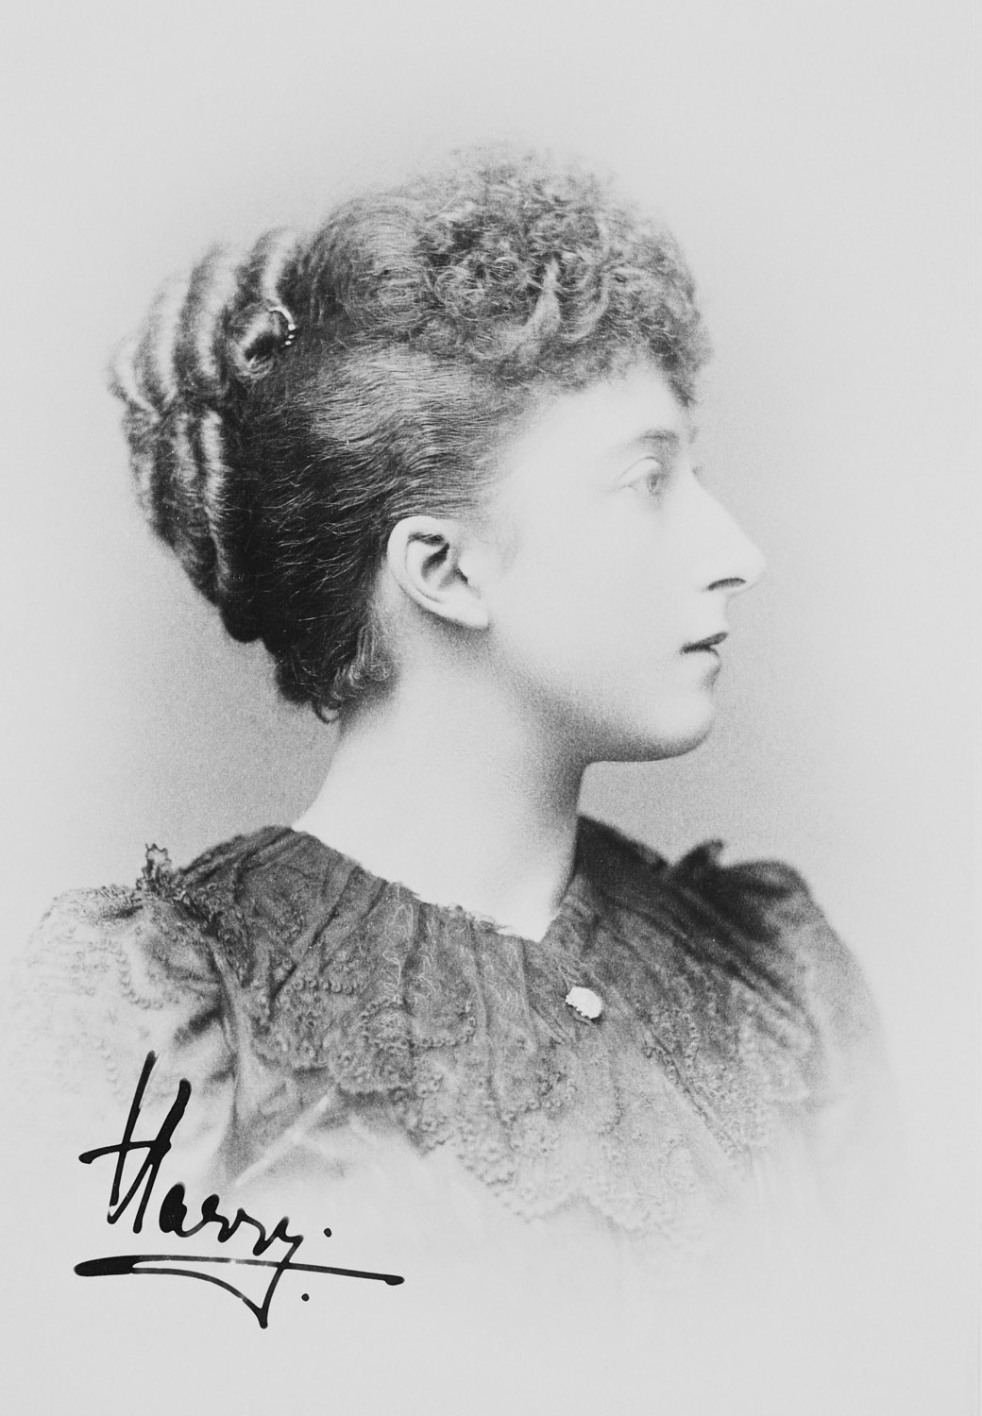 Princess Maud of Wales, later Queen Maud of Norway circa 1893